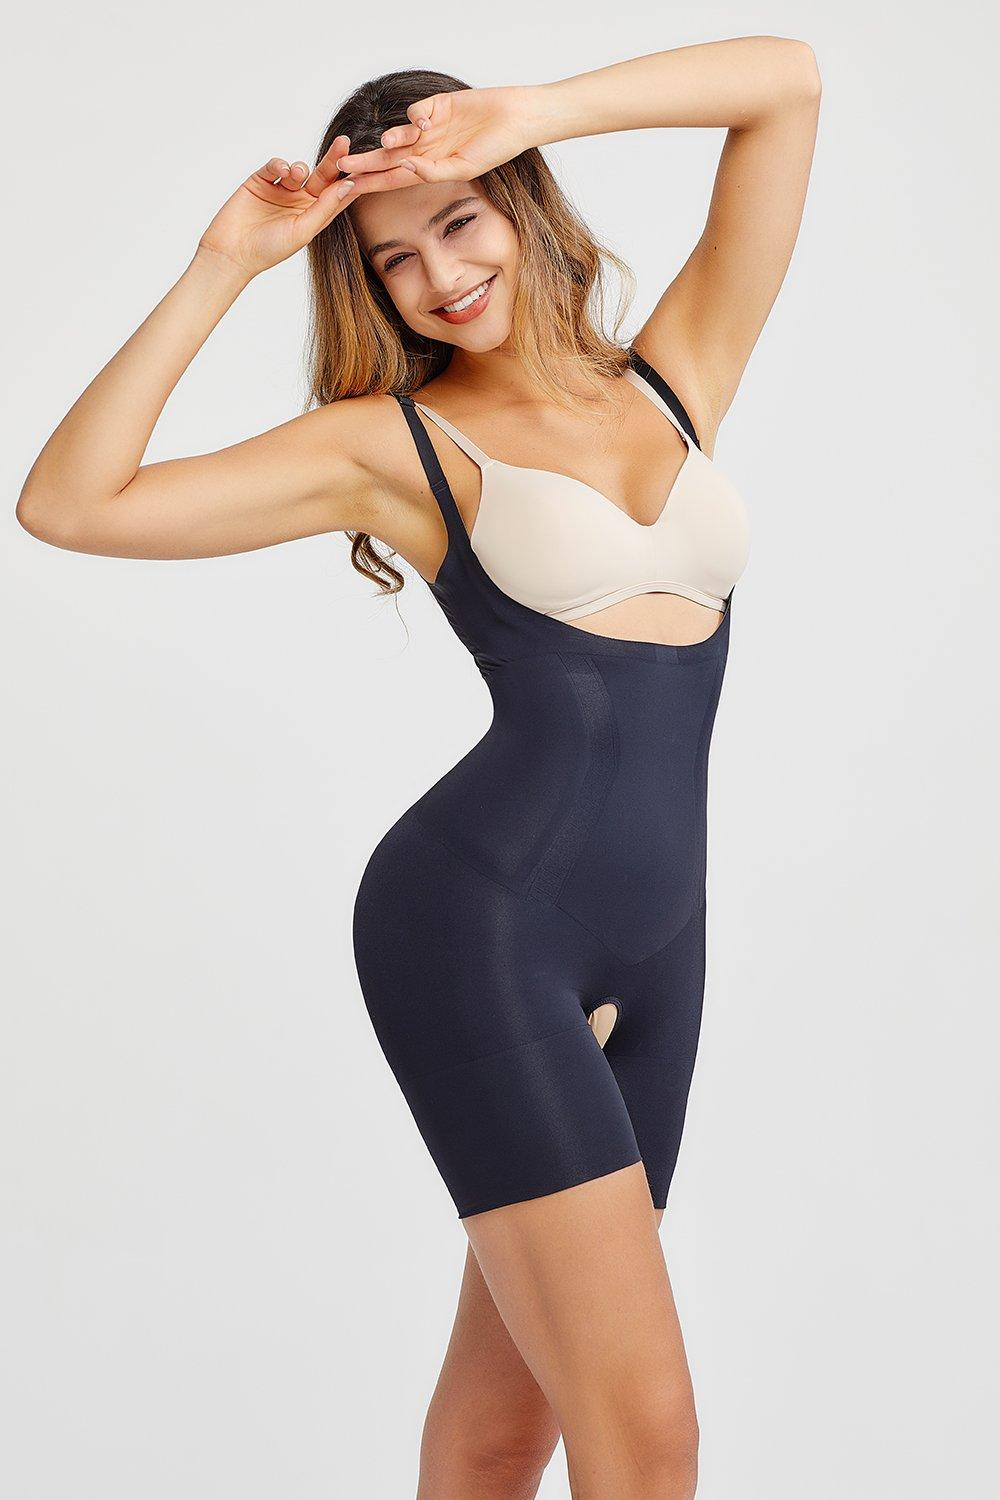 Best Tips for  Choosing Best Shapewear for Your Body